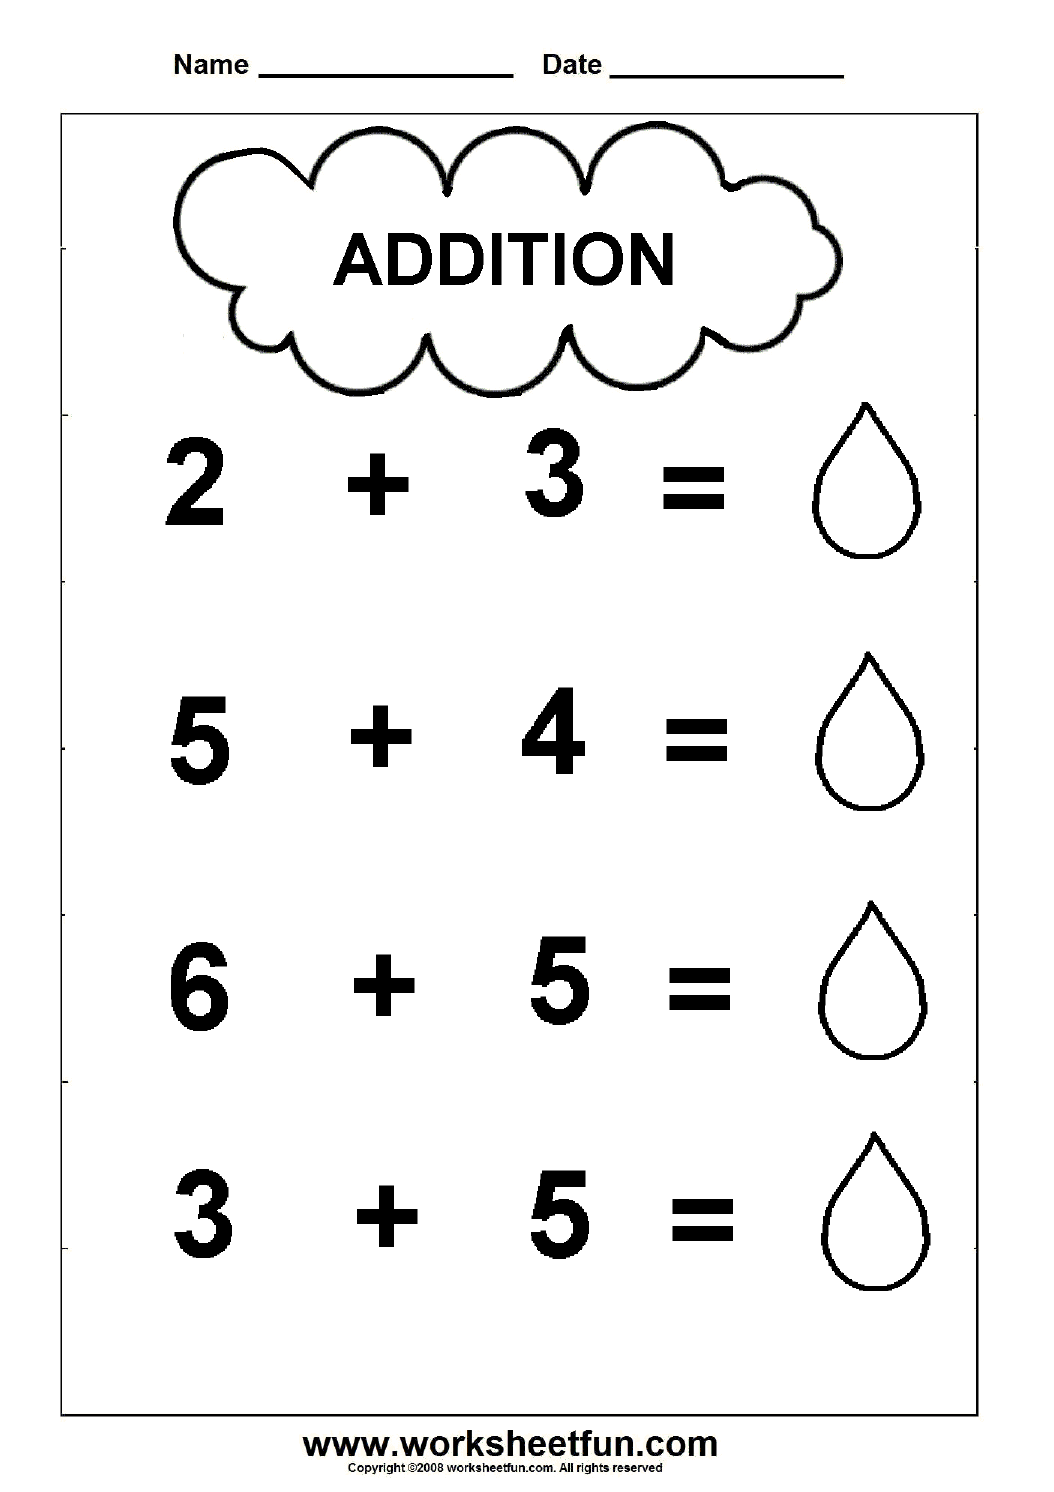 Addition Worksheets Kindergarten Worksheets – Addition Worksheet for Kids